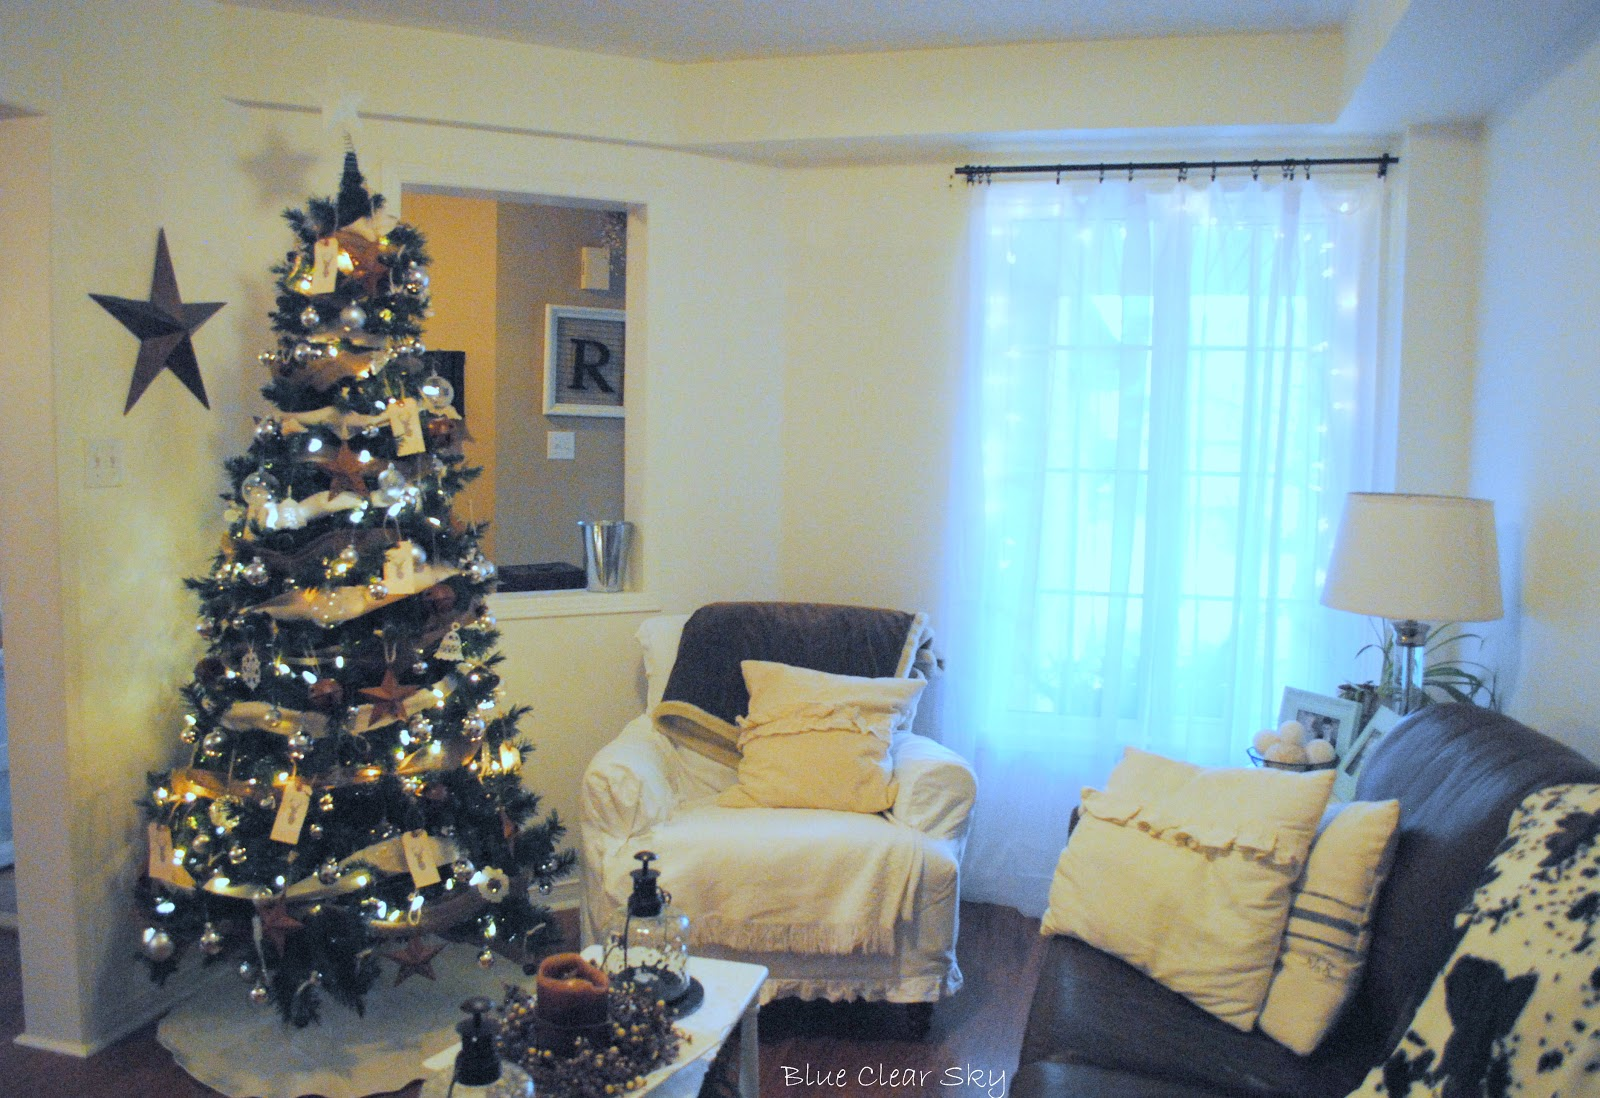 Rustic Maple: Christmas 2012 - Our Living Room